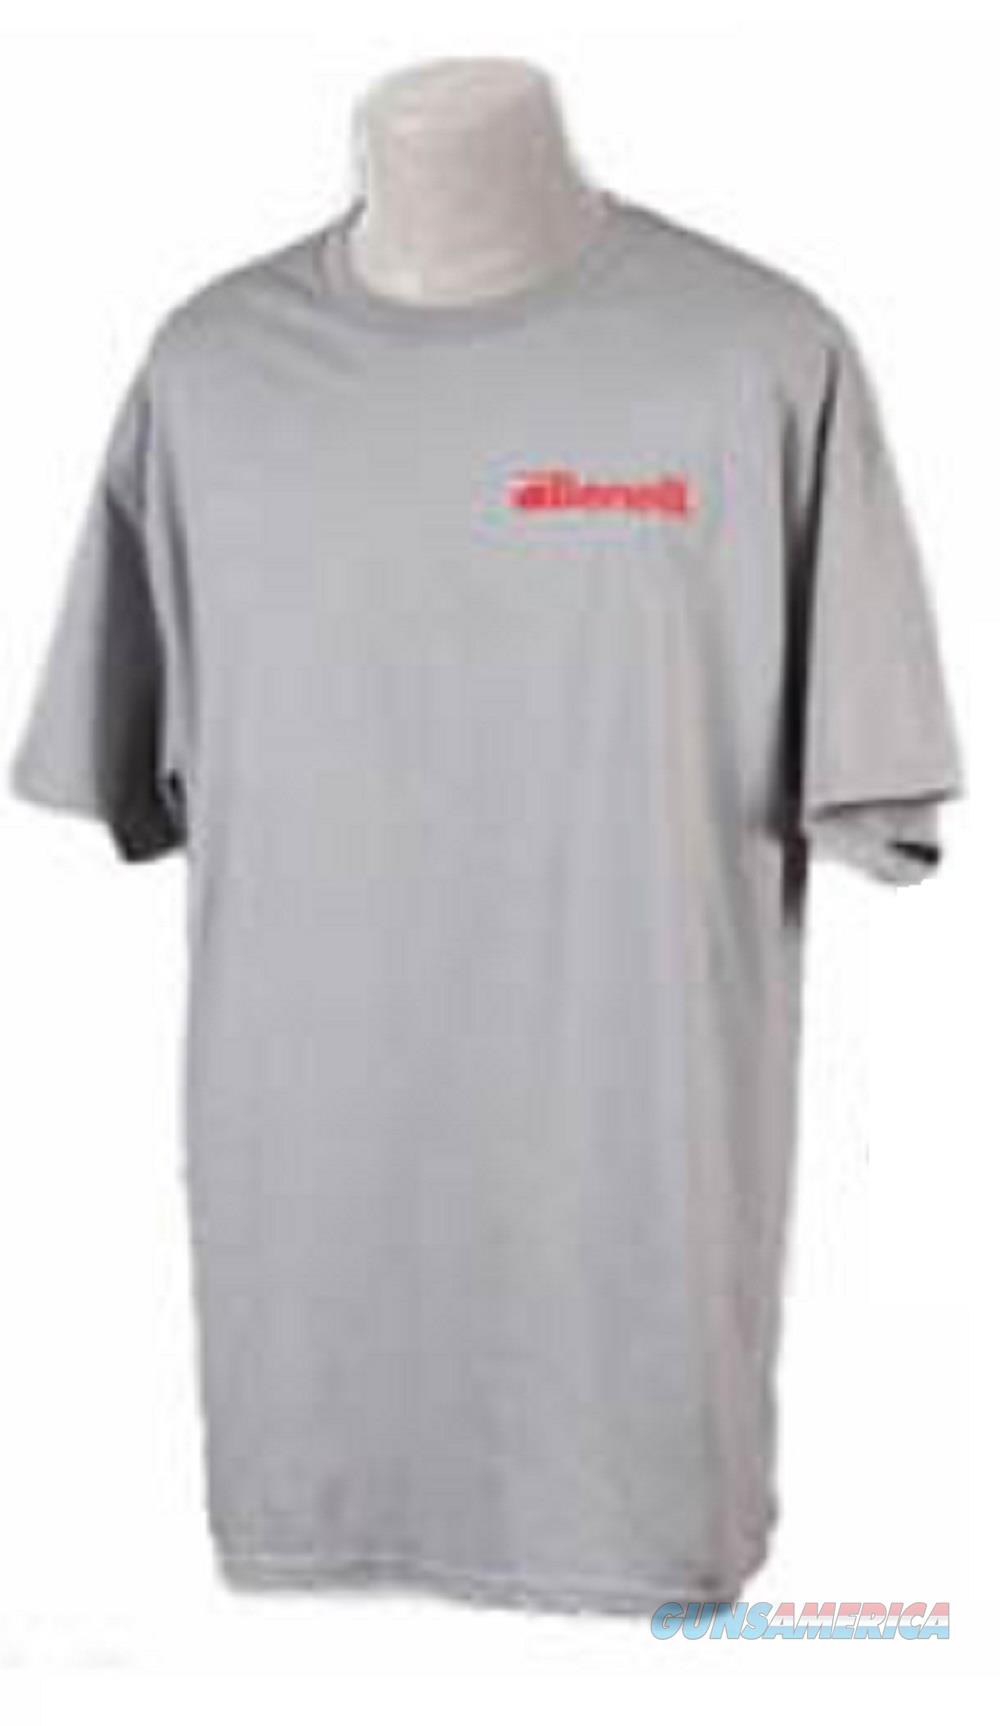 Benelli M2 T-Shirt Grey Extra Large Red Logo  Non-Guns > Paintball > Clothing